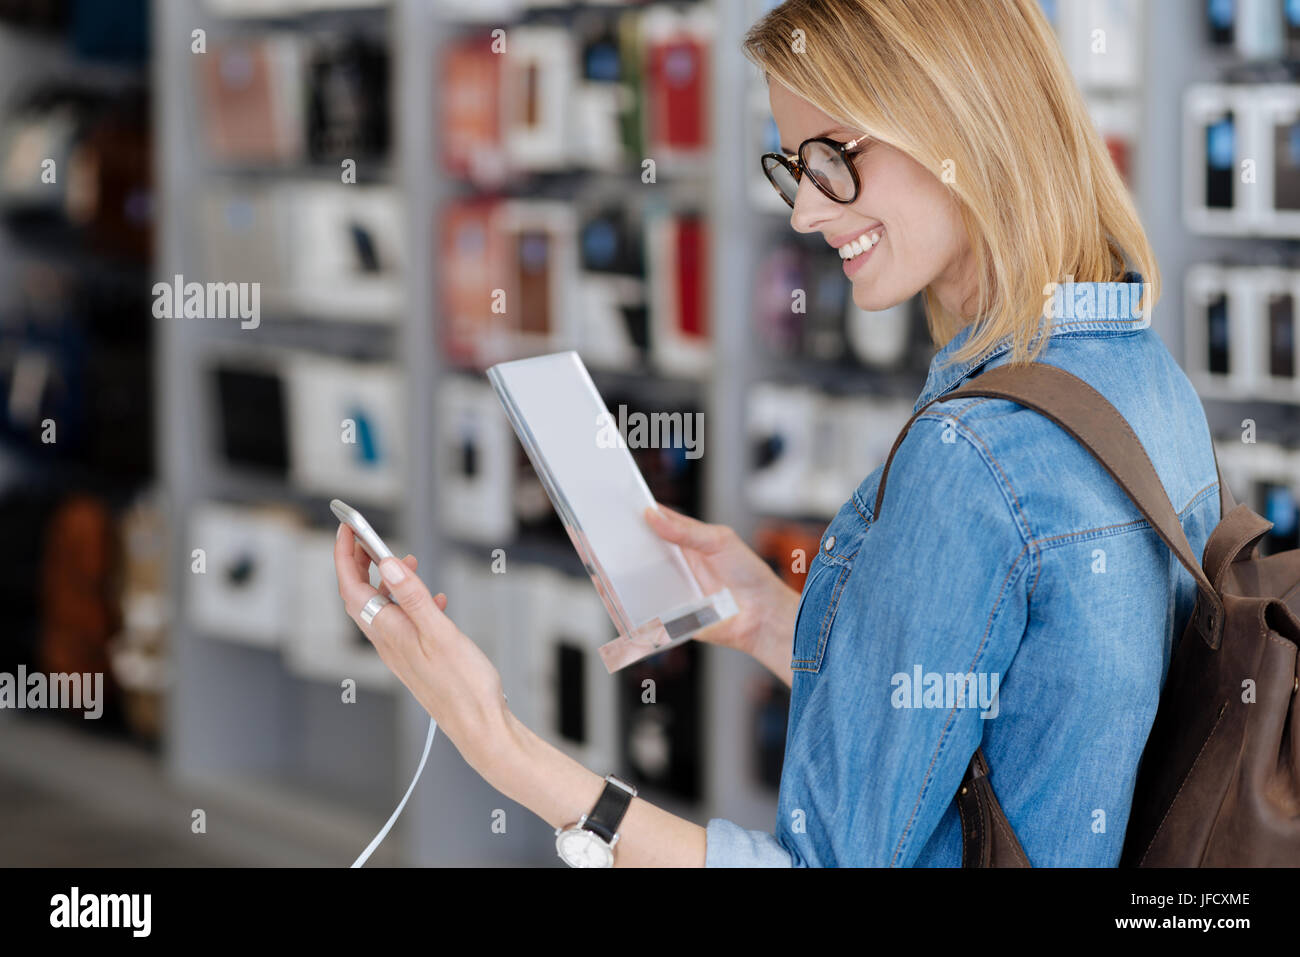 Let me take a closer look. Shot of a smiling woman with a backpack looking at a smartphone while holding a product Stock Photo